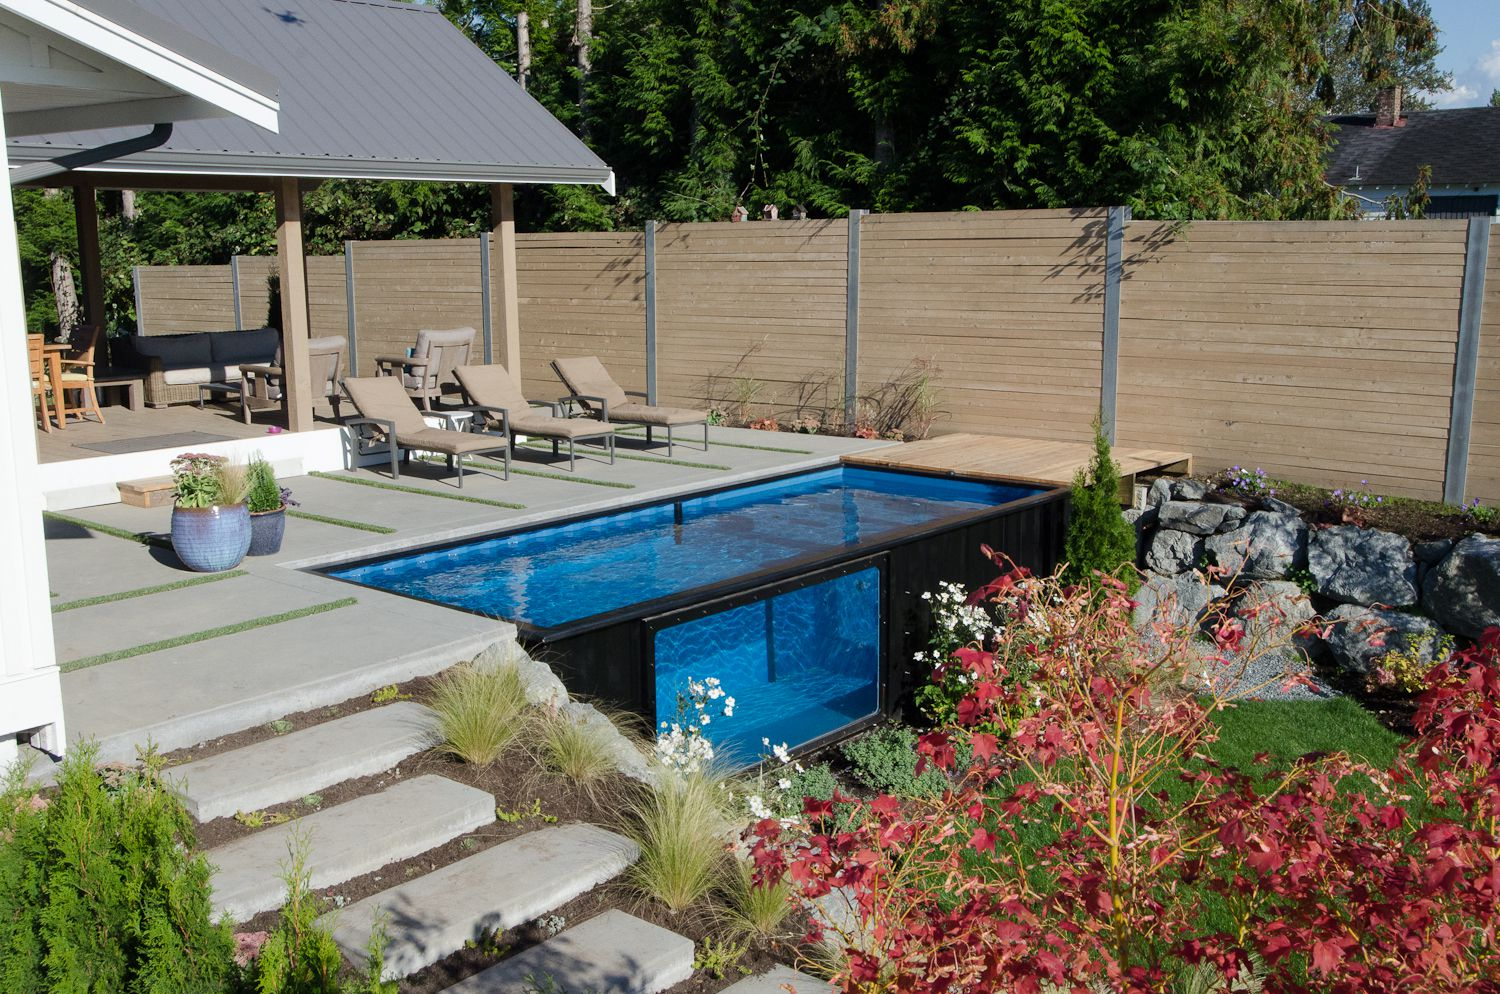 22 In Ground Pool Designs Best Swimming Pool Design Ideas For Your with 14 Awesome Designs of How to Makeover Backyard Landscaping With Pool